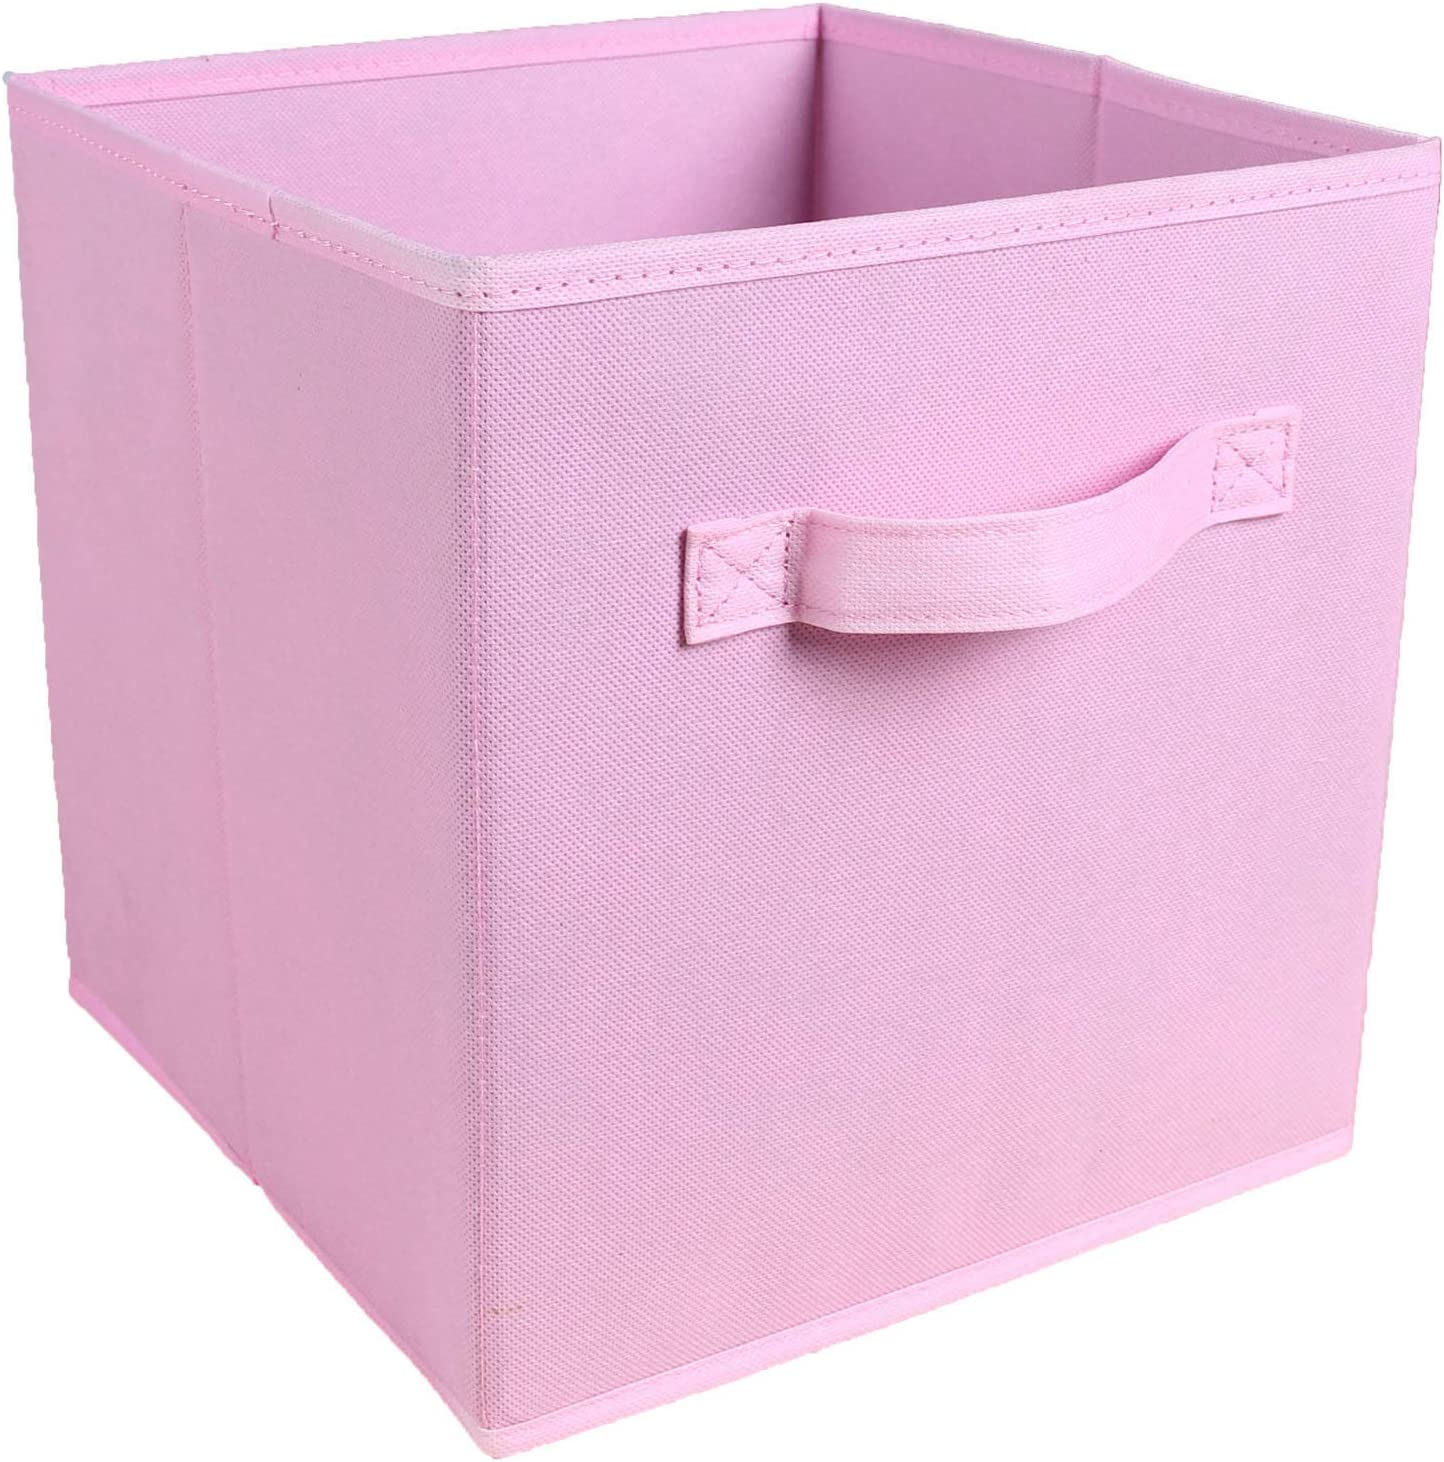 SAVICOS 6 Ranking TOP12 Foldable Storage Collapsible Box Home Organize Clothes Choice